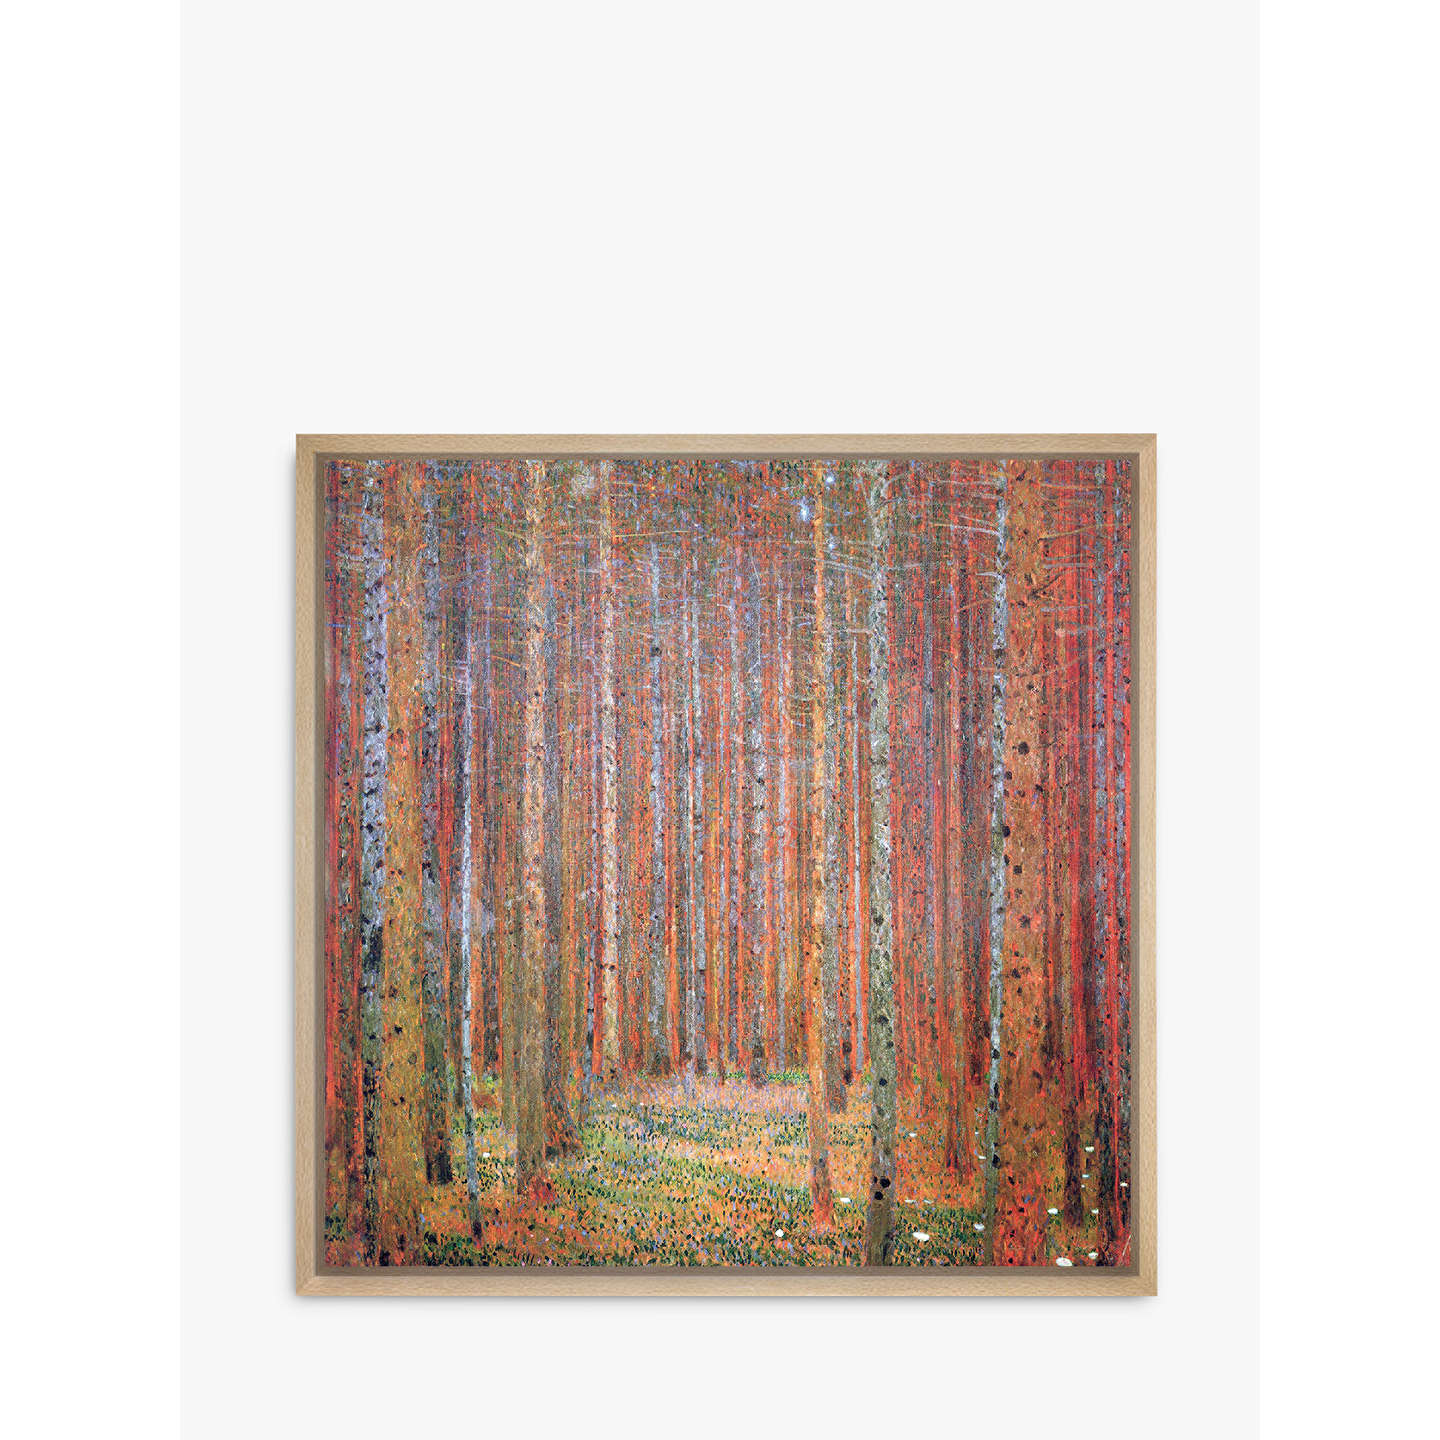 BuyGustav Klimt - Tannenwald 1, Natural Ash Framed Canvas, 110 x 110cm Online at johnlewis.com